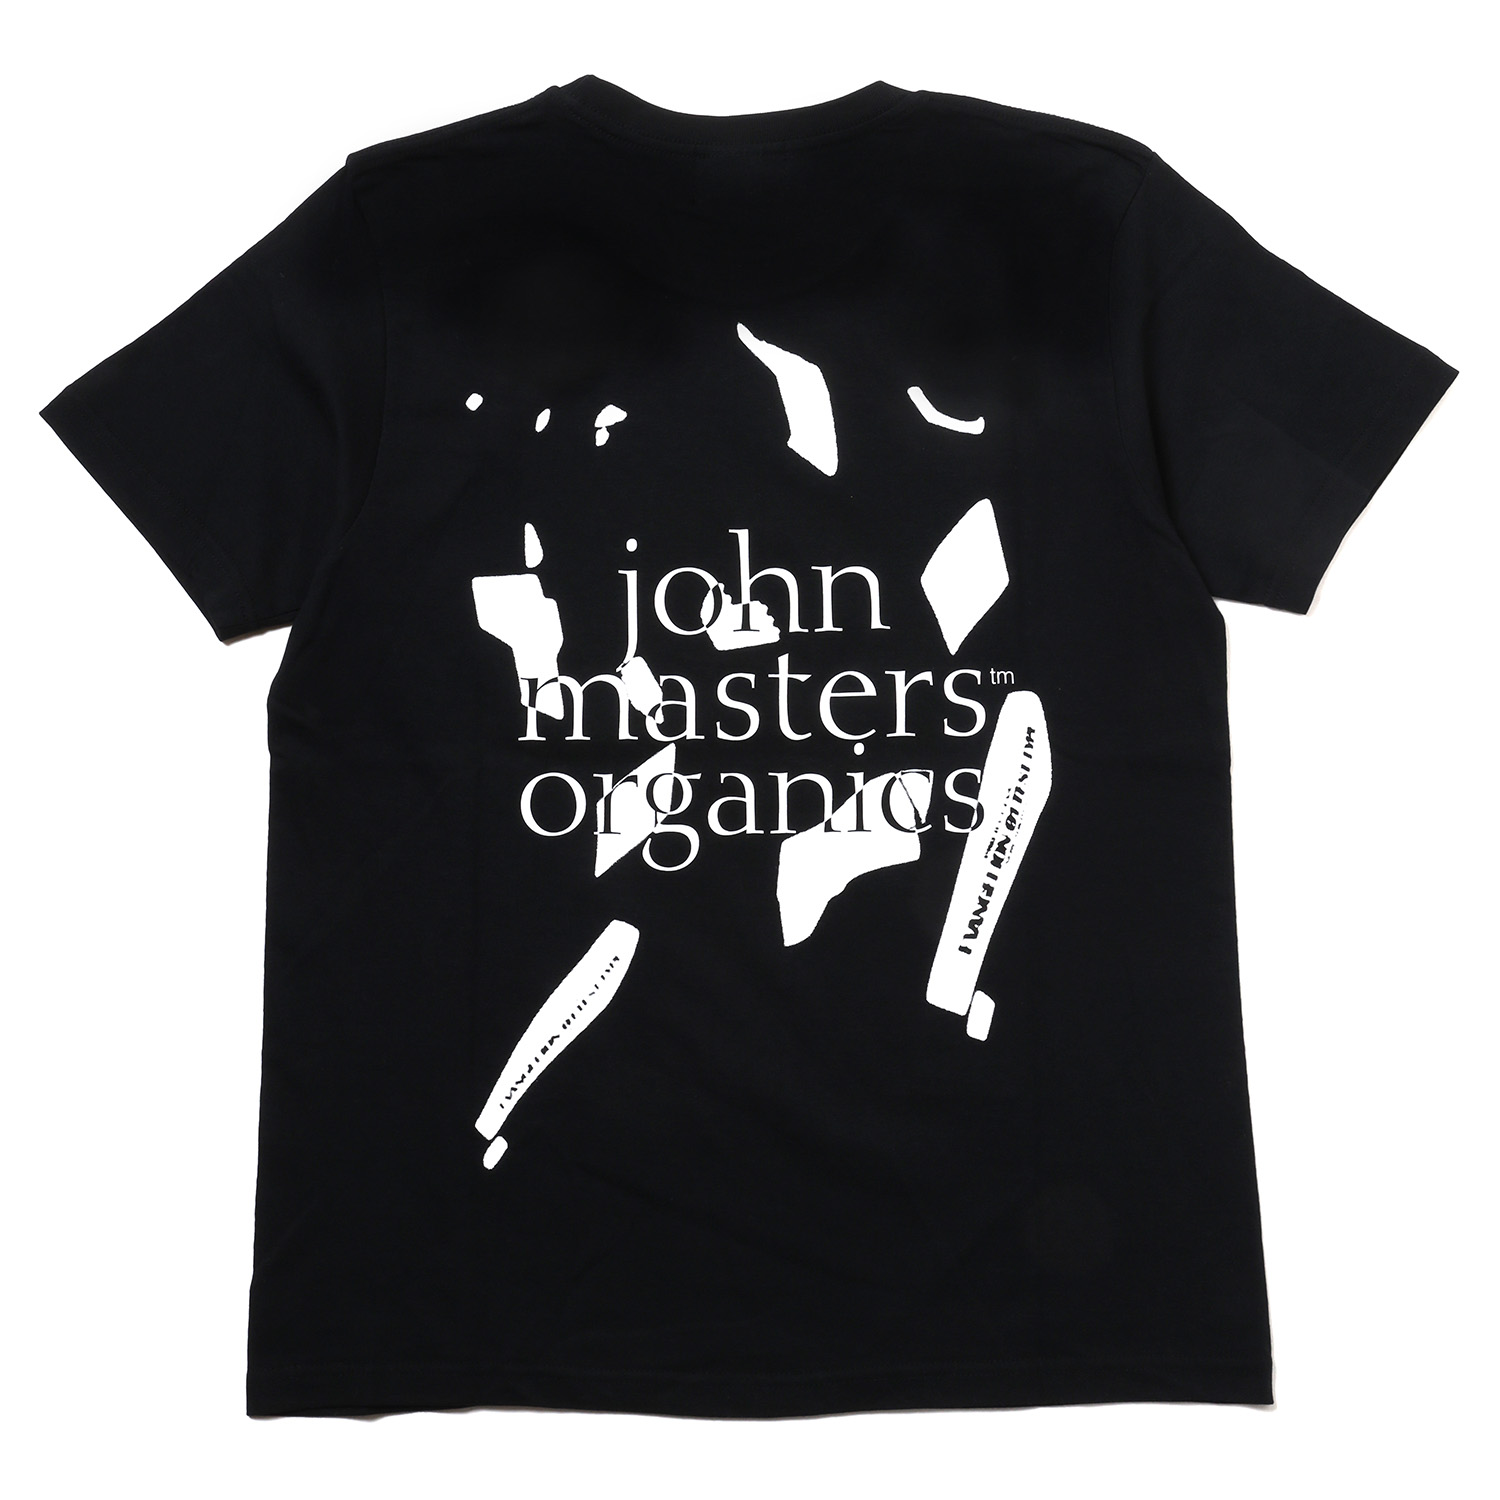 EVA-01 T-Shirt by john masters organics with EVA-01 HAND REFRESHENER (BLACK)